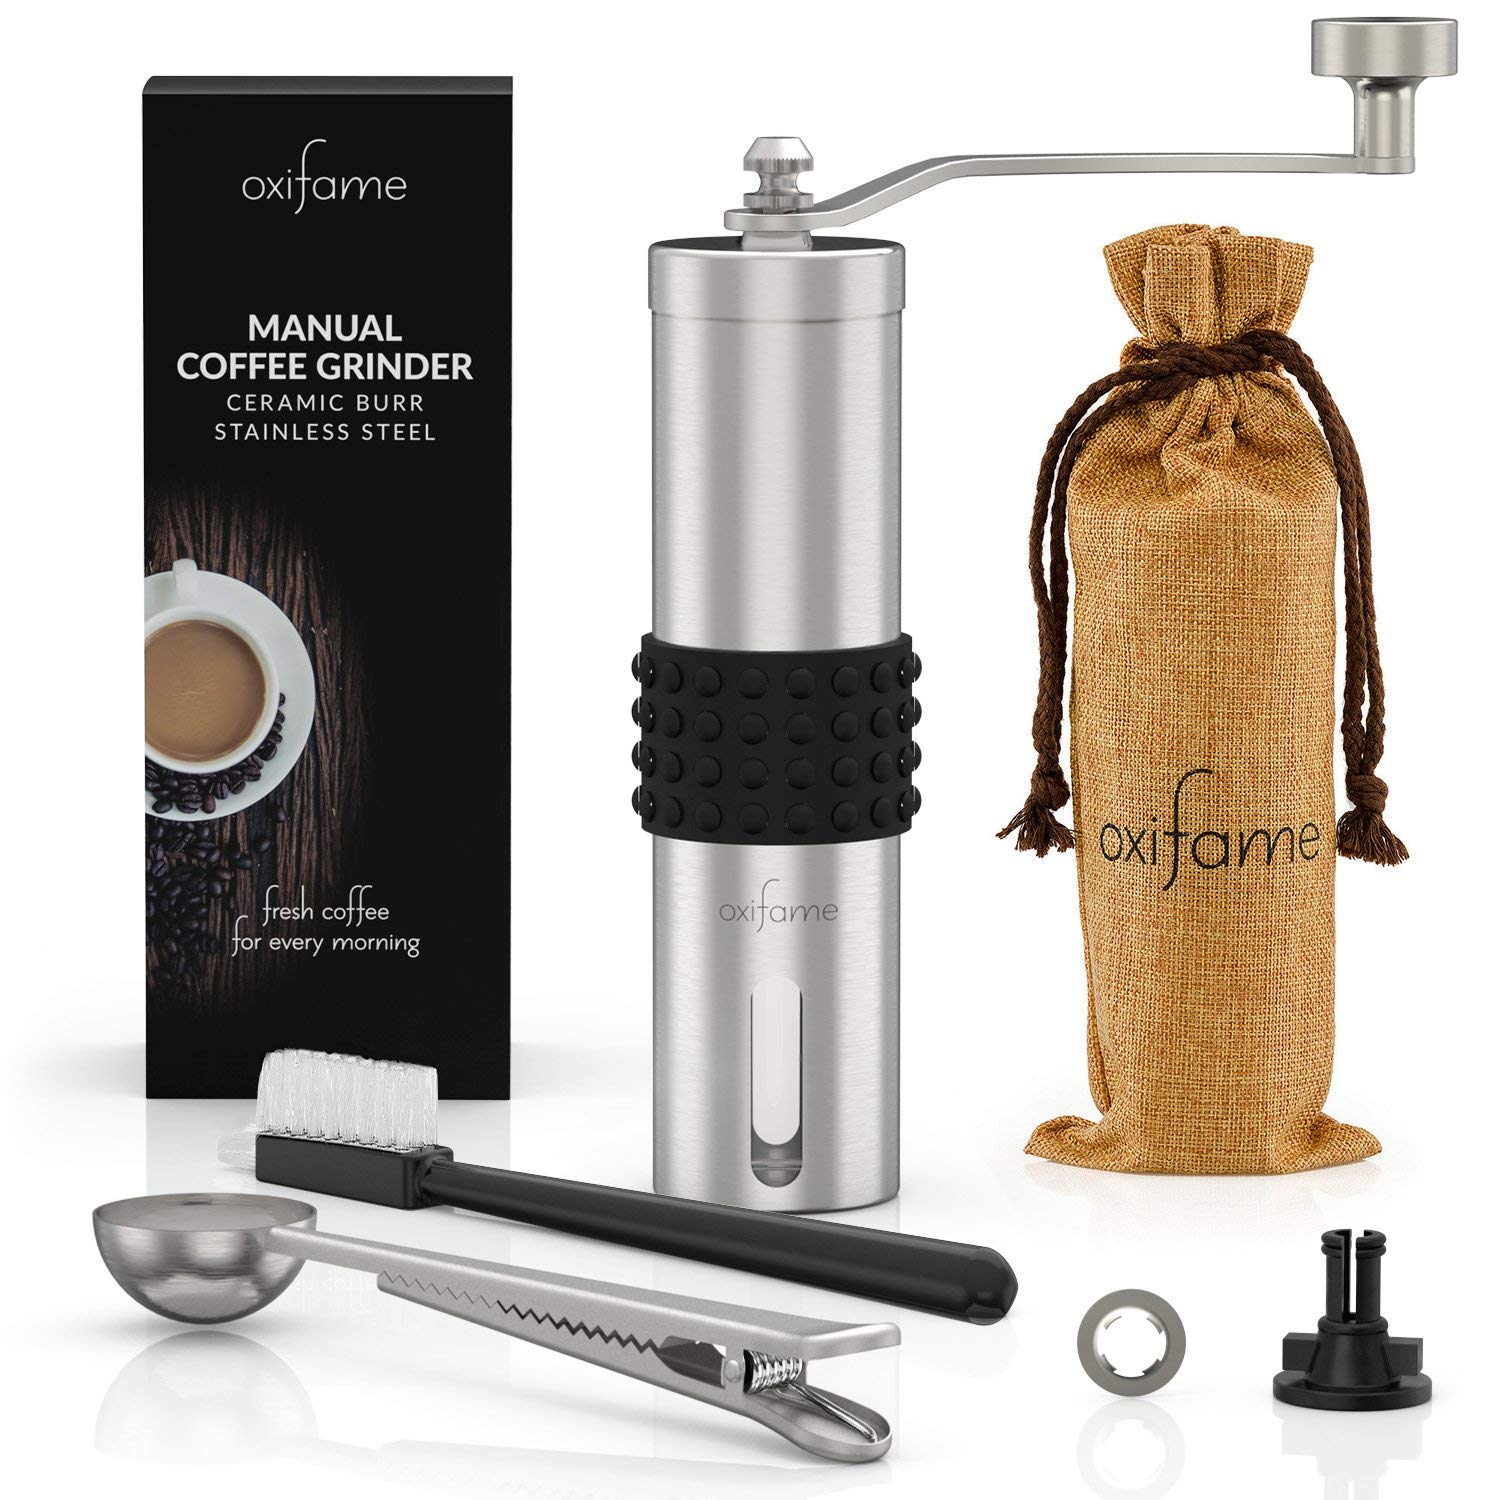 Oxifame Hand Coffee Grinder with Ceramic Conical-Burr – Stainless Steel Manual Crank for Coffee on the Go OXF-0001